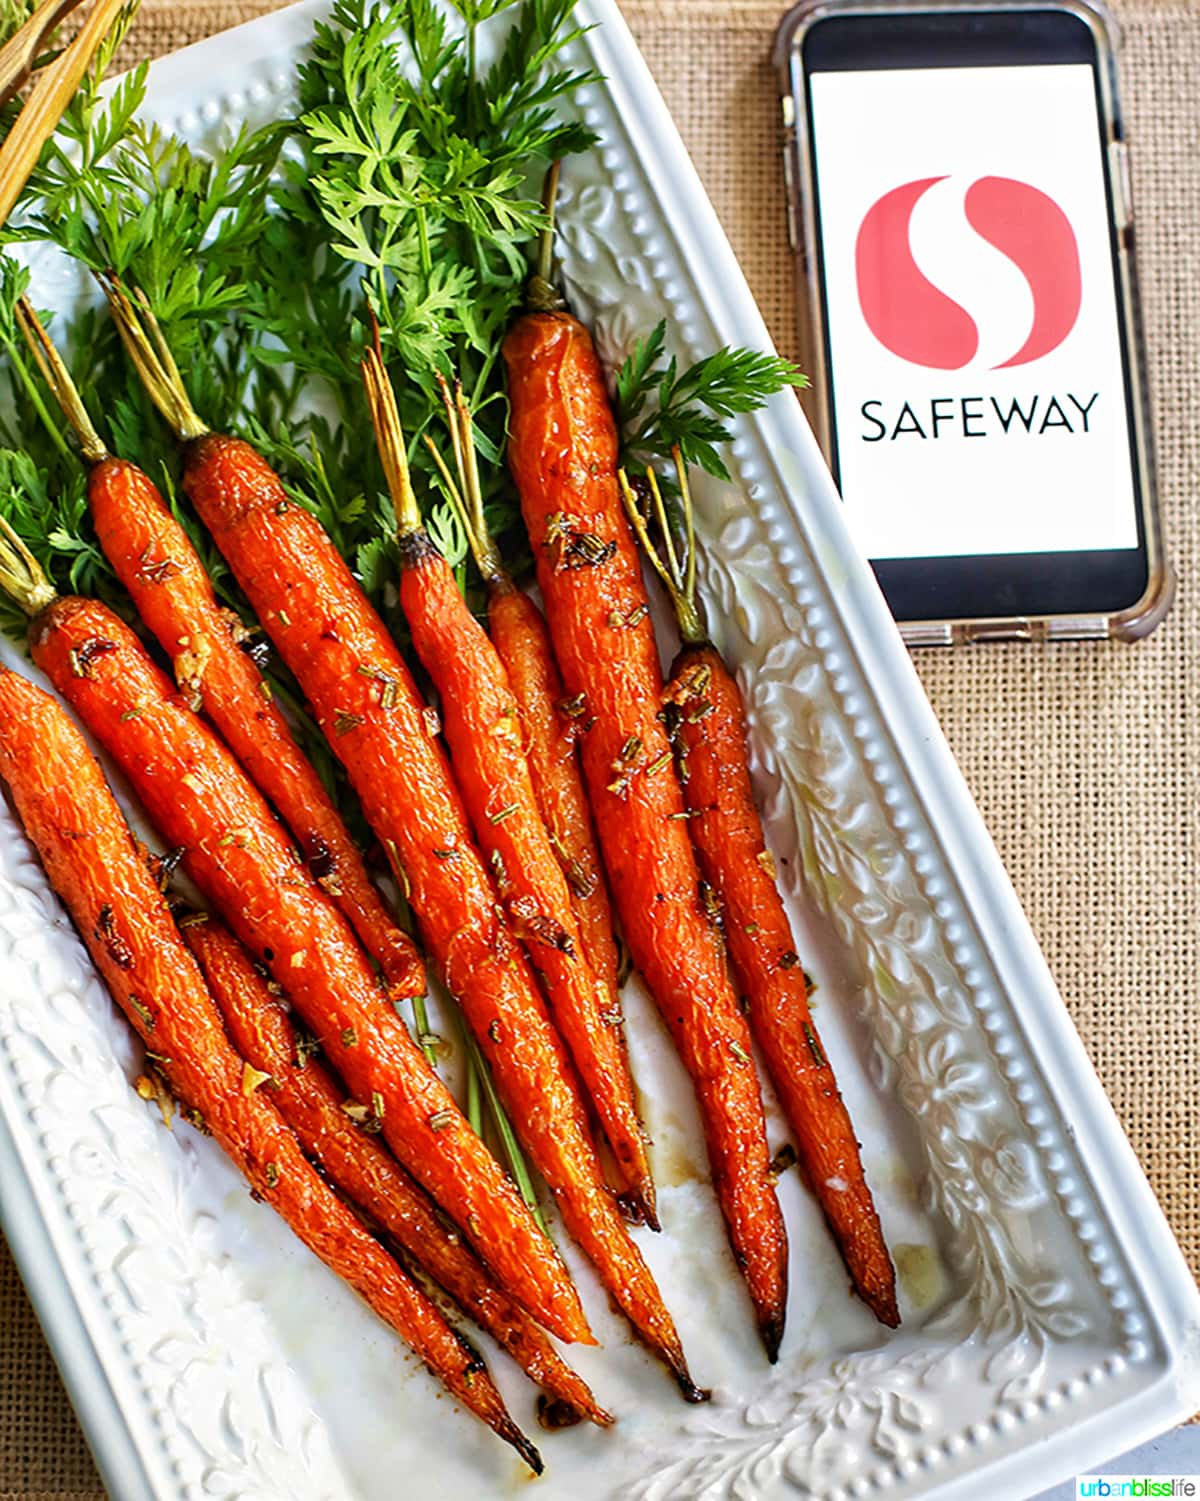 glazed carrots on white plate with safeway logo on phone